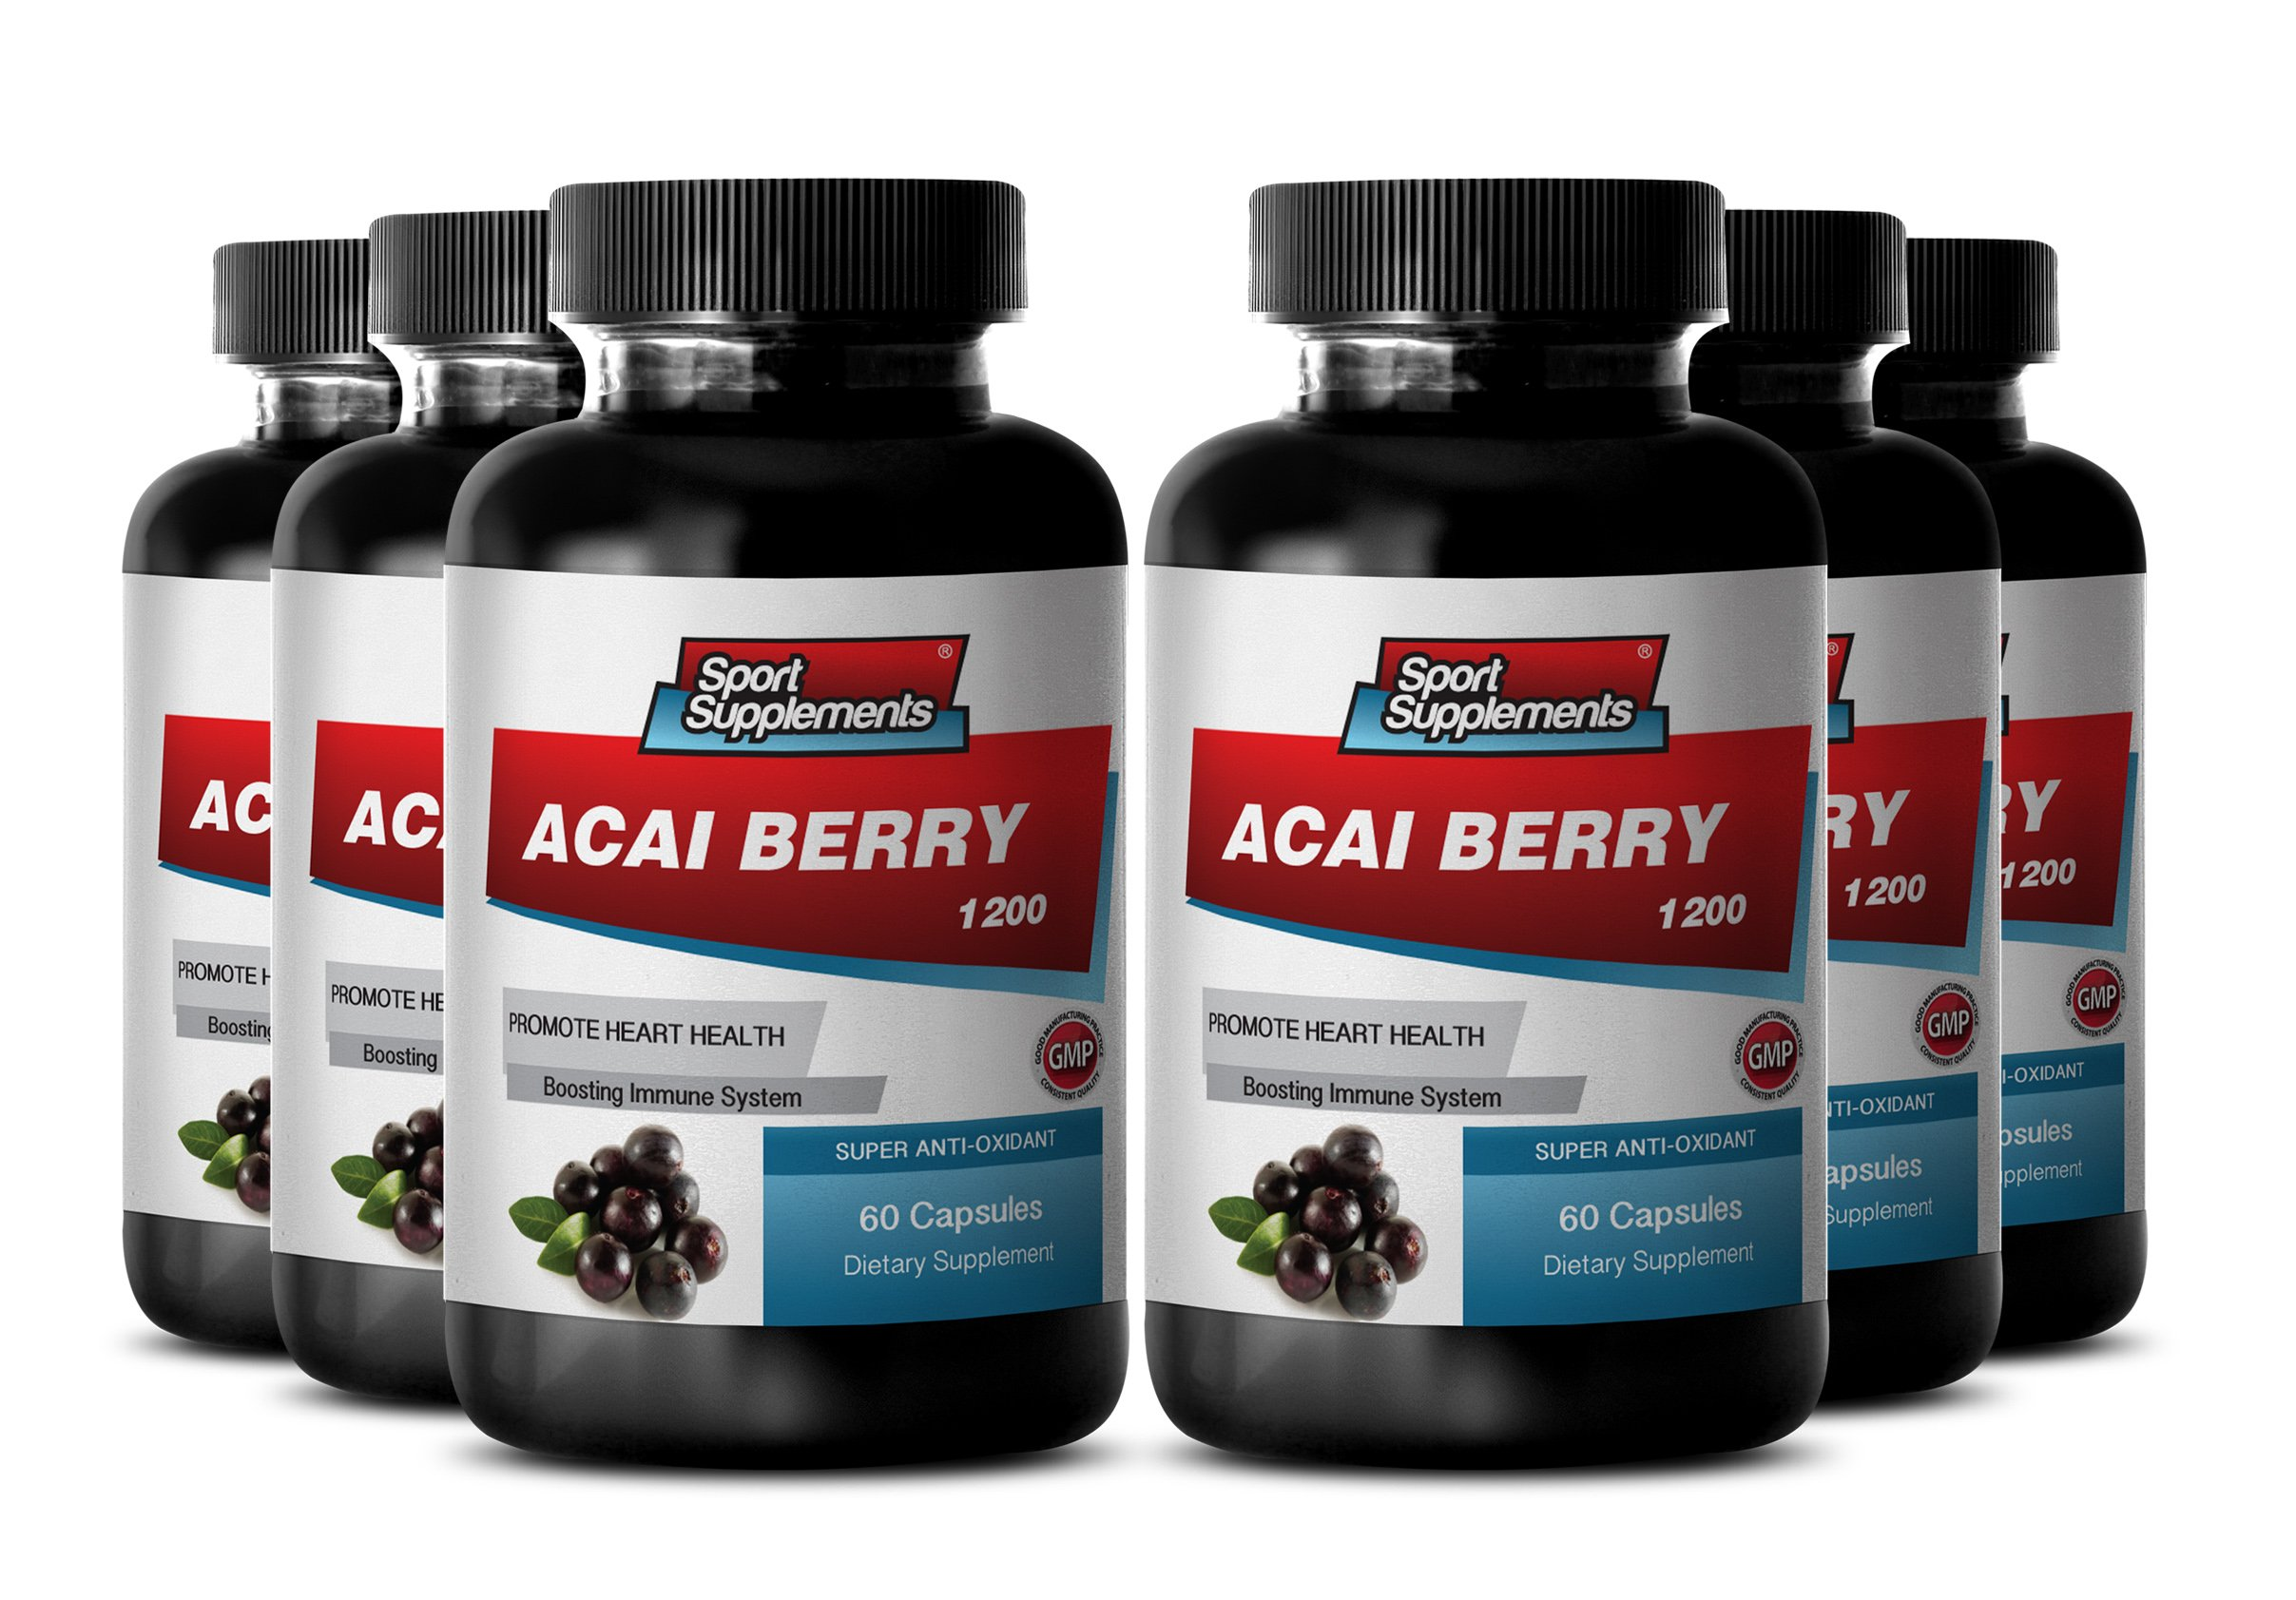 Natural Weight Loss with Acai Berry - Acai Fruit (4:1) Concentrate 1200mg - Boost Energy Levels, Improves Digestive Function, and Mental Focus - Strong Anti-aging Benefits (6 Bottles 360 Capsules)